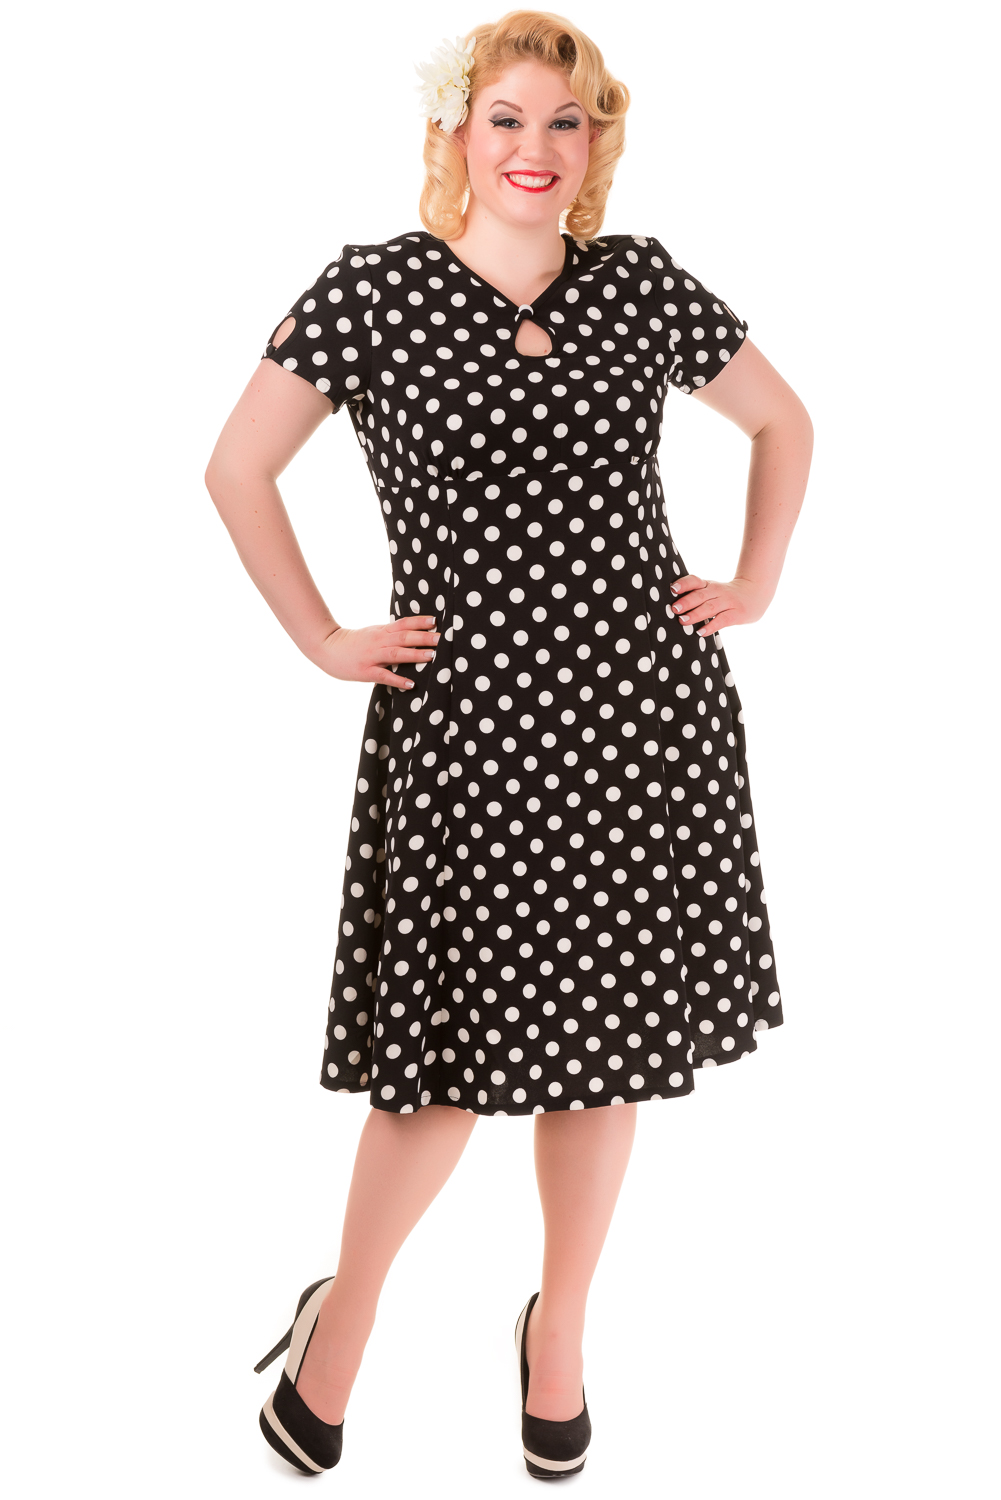 Retro dress plus size uk